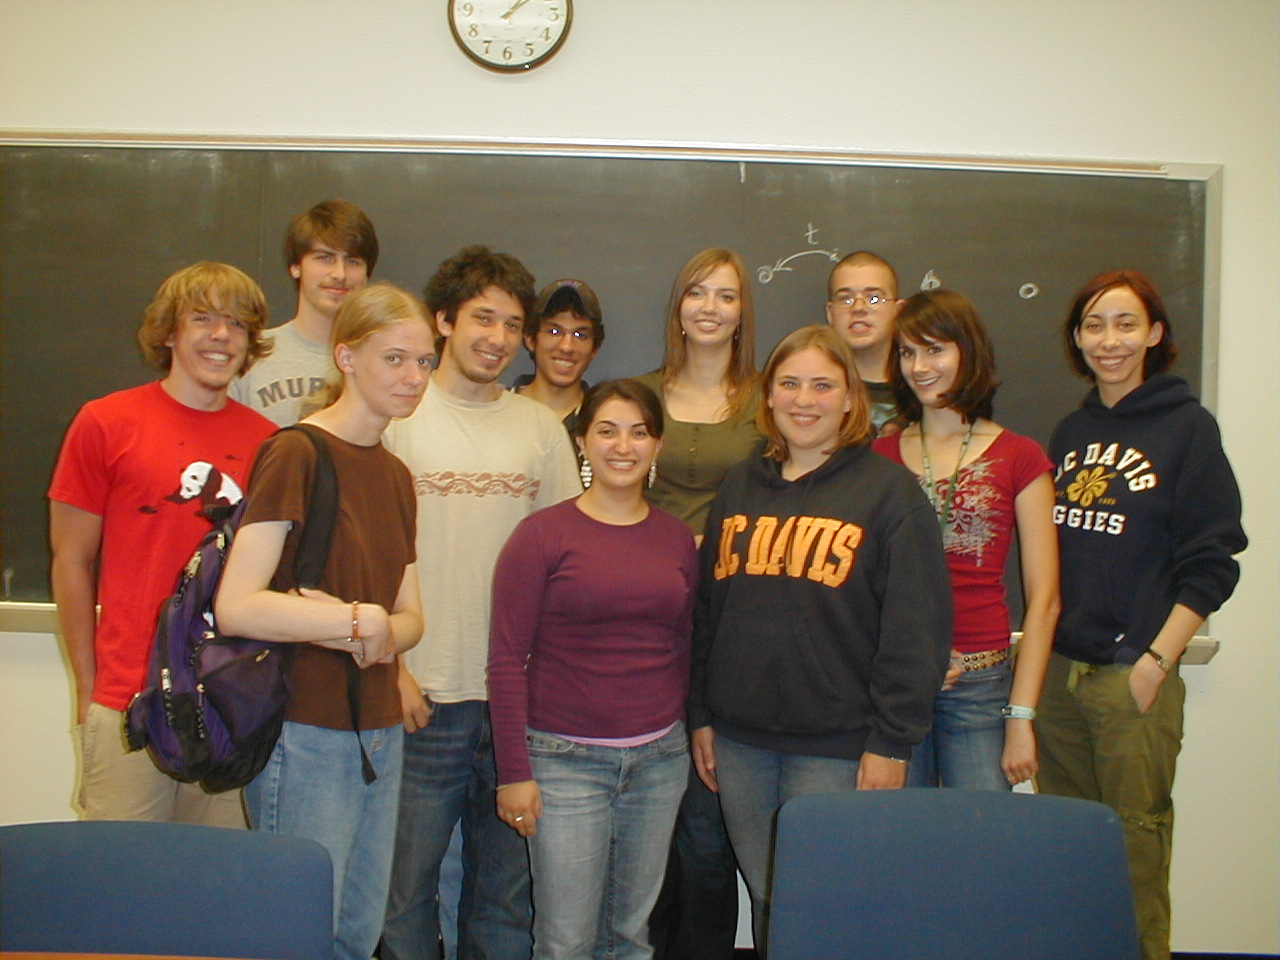 A group photo for the 2006 UC Davis physics REU. You can see me third from the right. Photo from http://london.ucdavis.edu/~reu/REU06/reu06.html